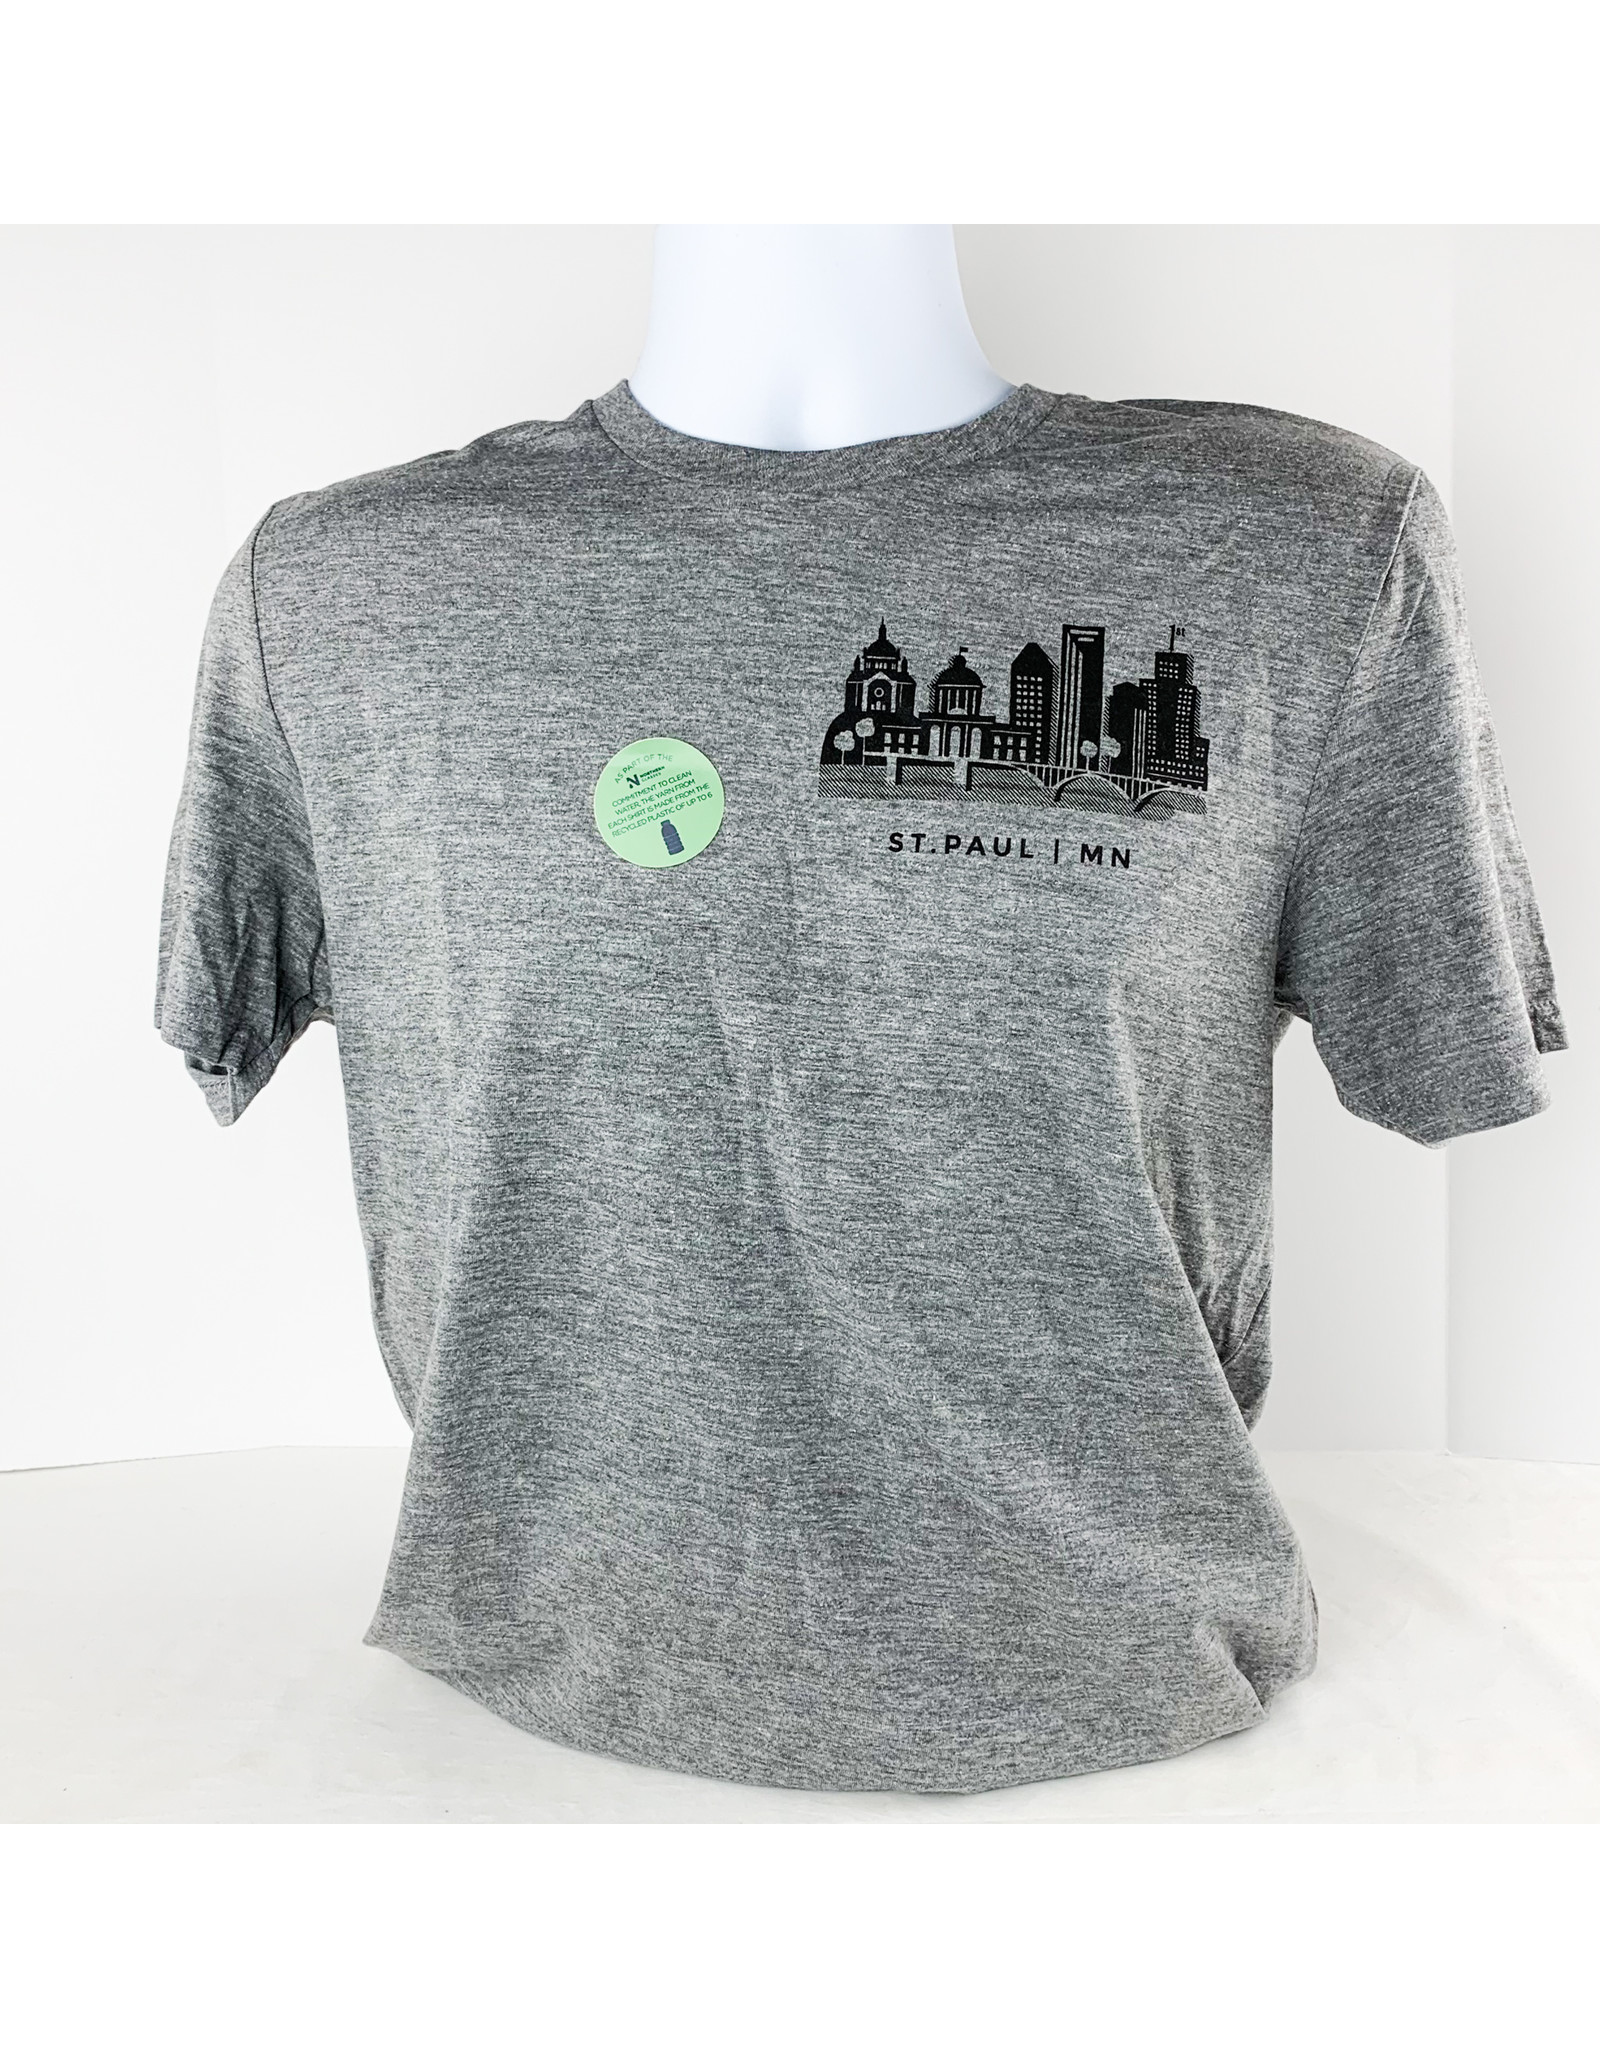 Northern Glasses St. Paul Tee